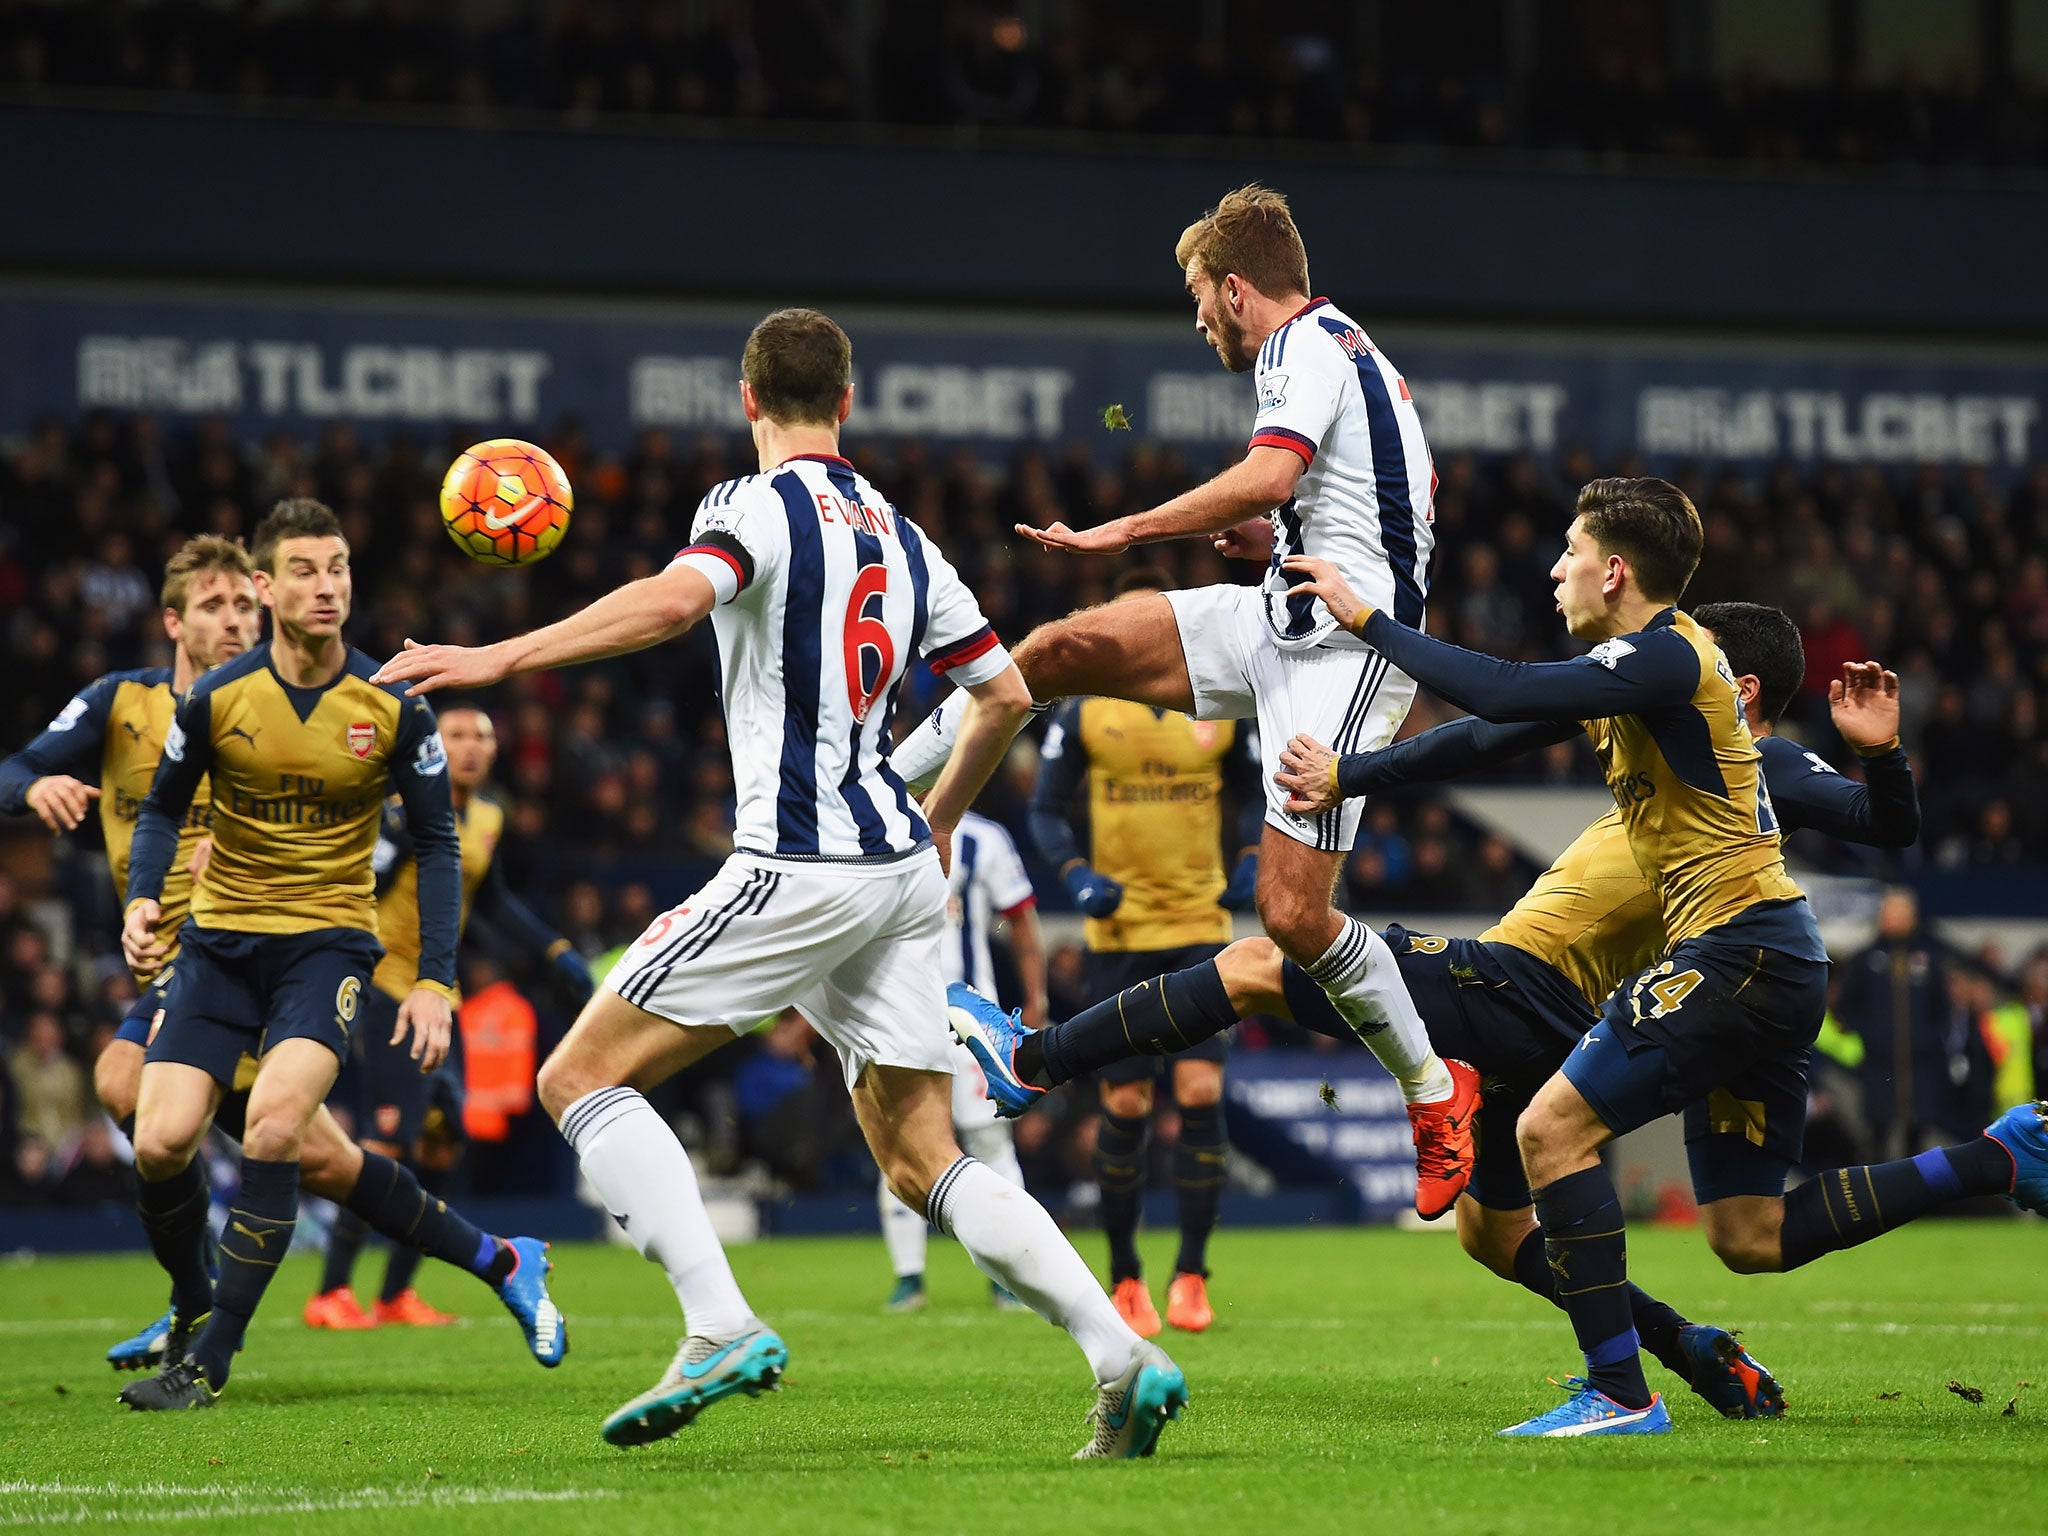 West Brom vs Arsenal match report: Santi Cazorla misses a penalty as Mikel Arteta own goal hands Baggies victory